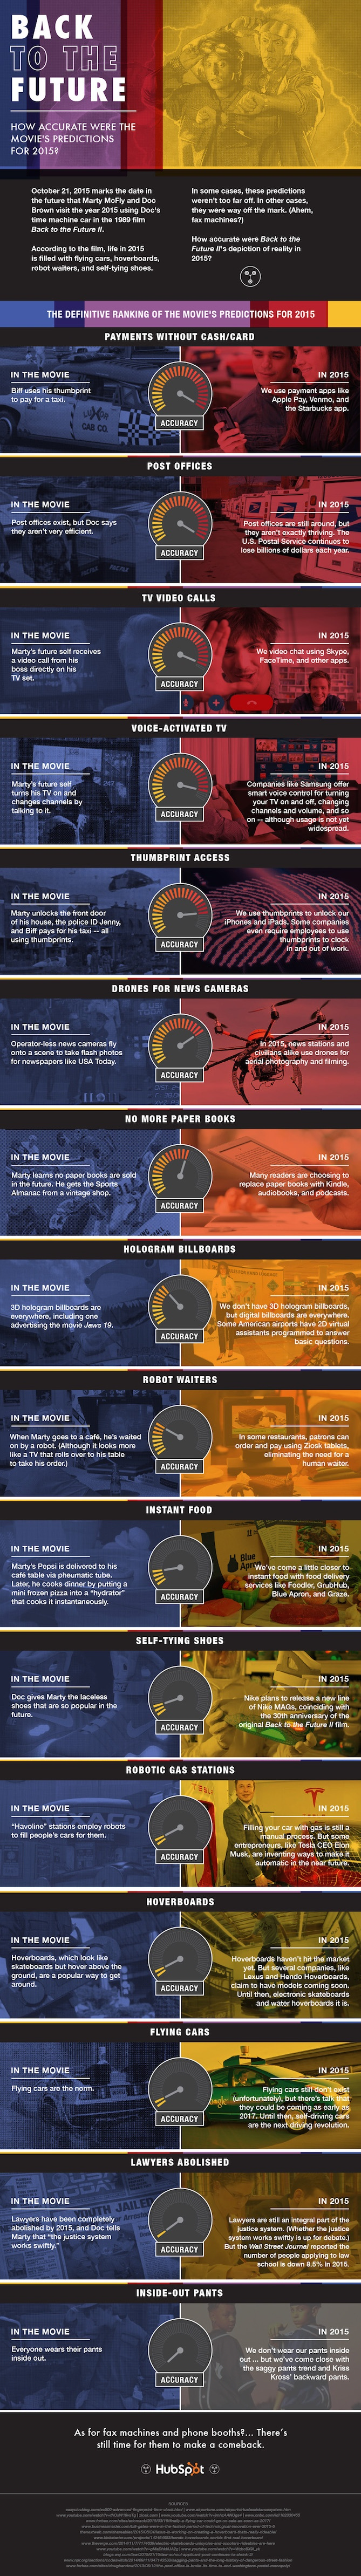 back-to-the-future-infographic.jpg